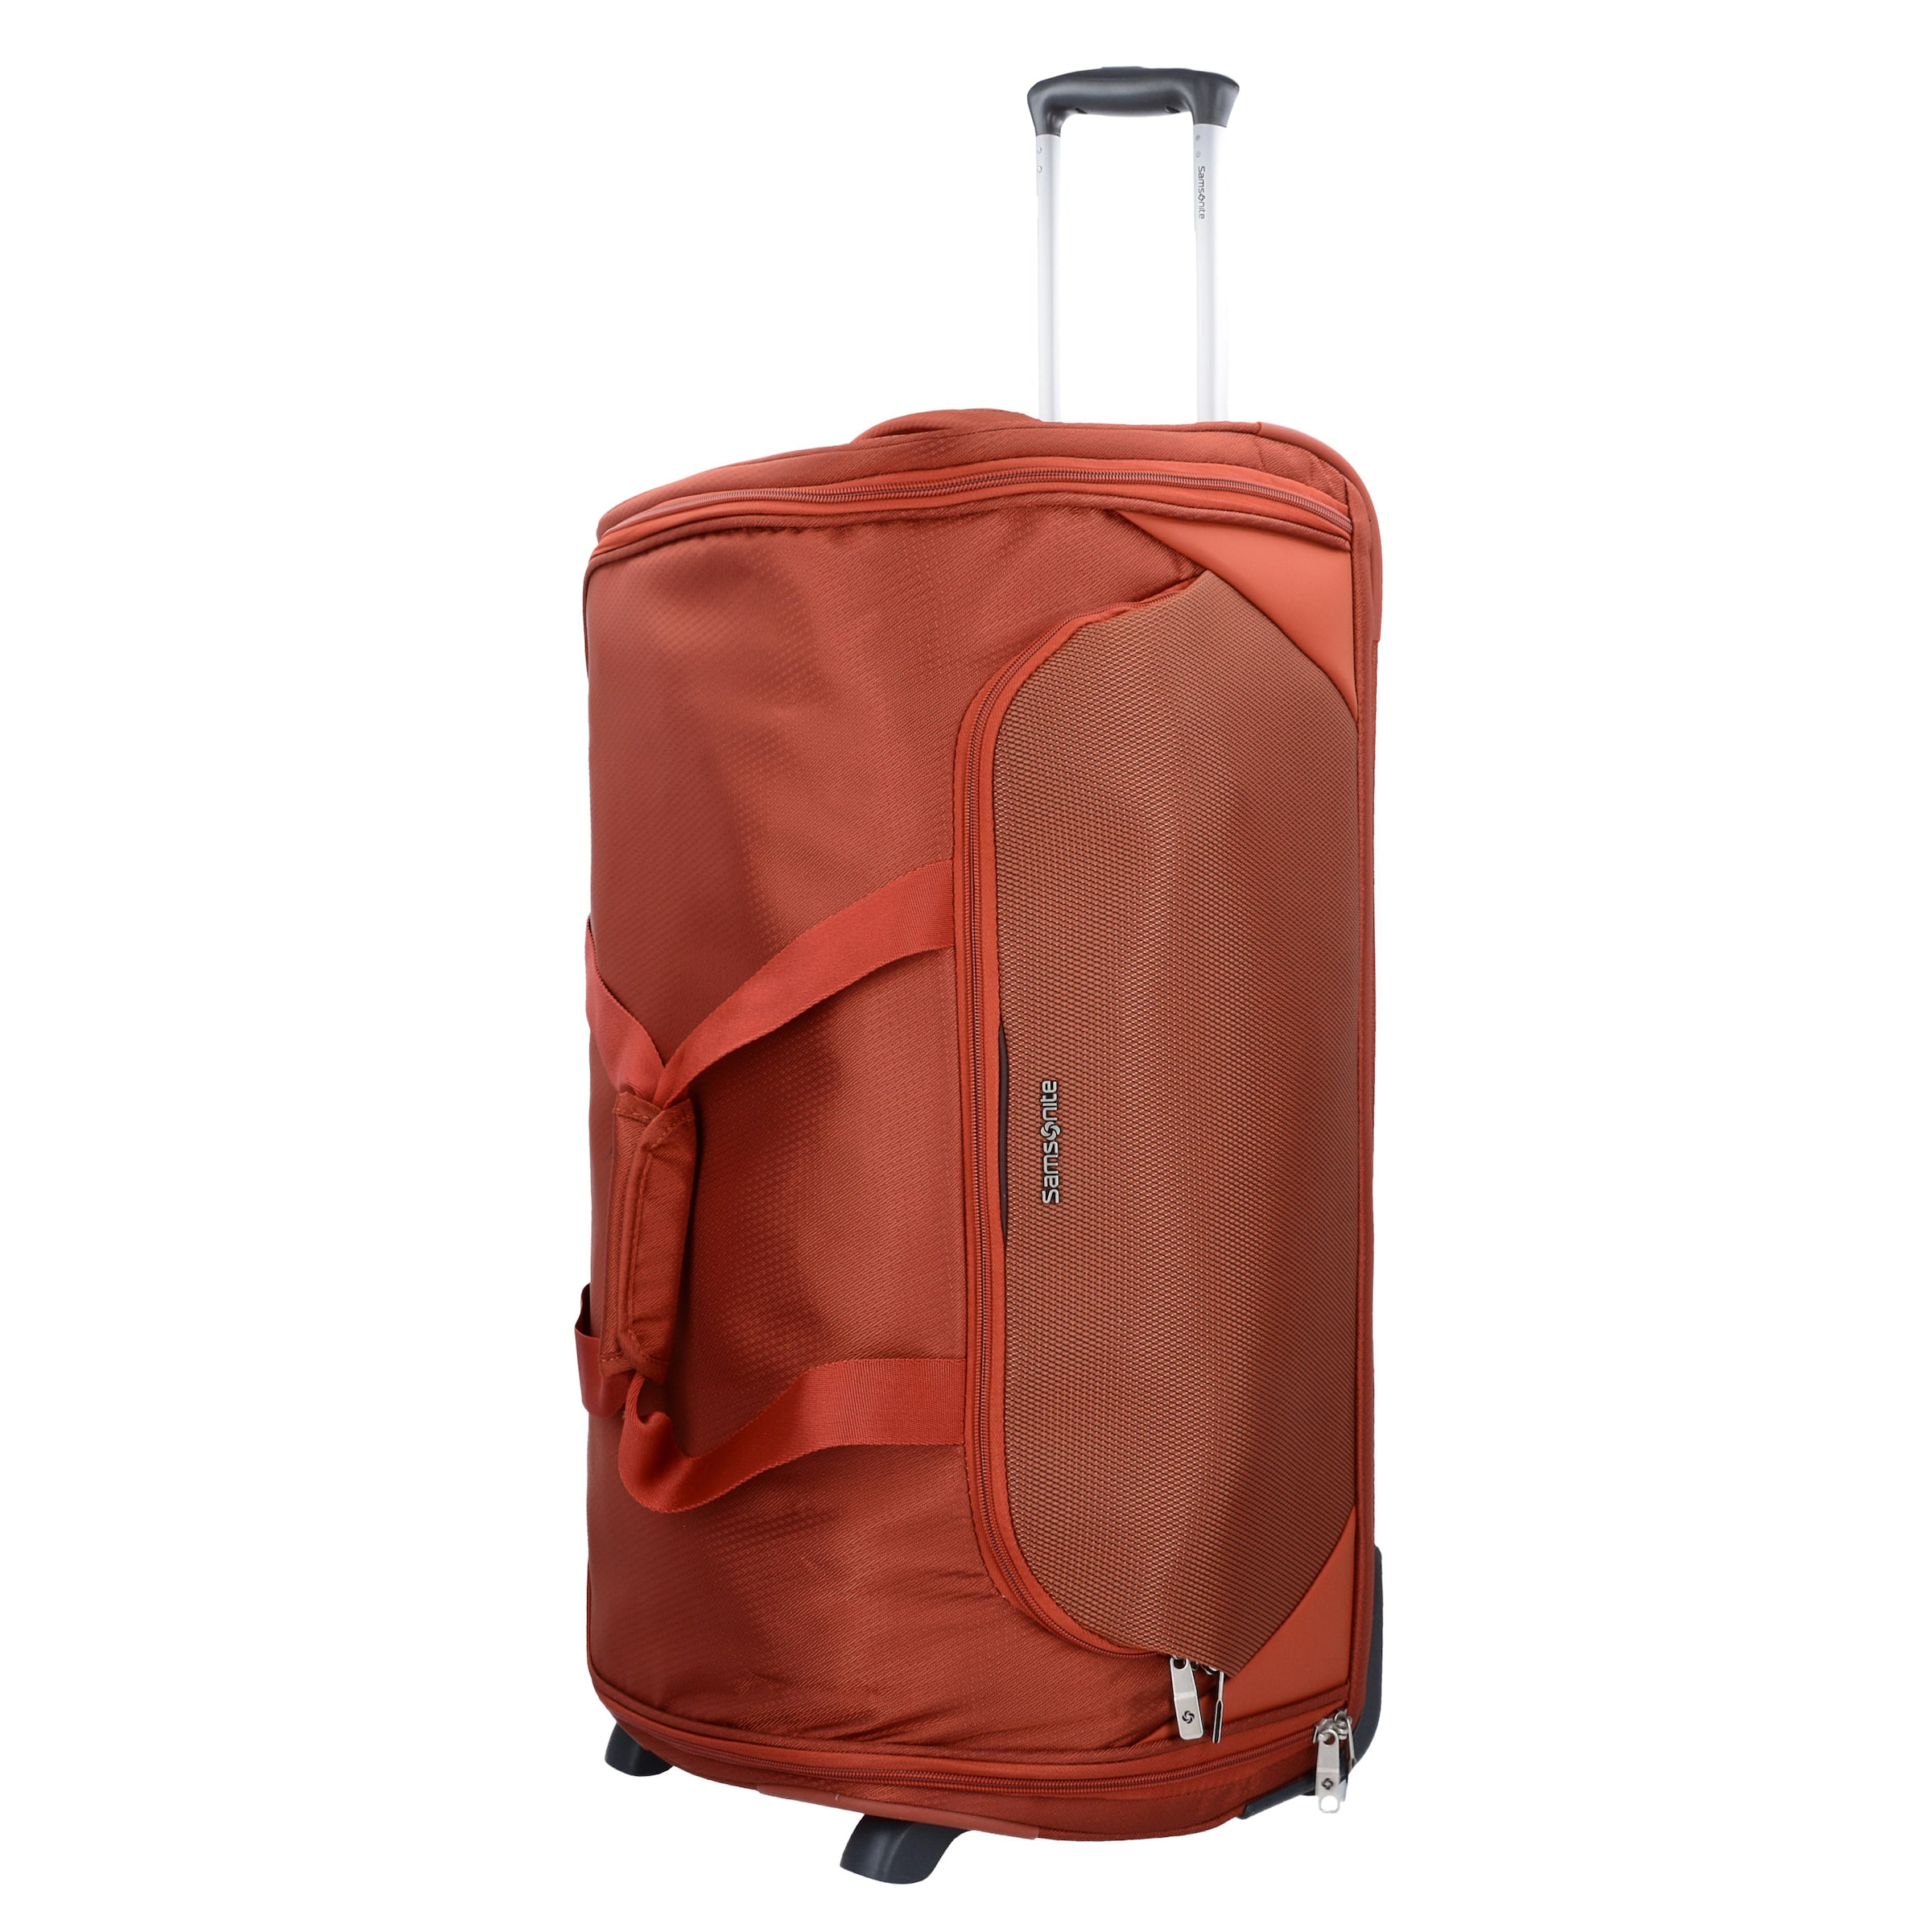 In Samsonite Reisetasche 'dynamore' Dunkelorange Upright rollen 2 f6vb7gyY